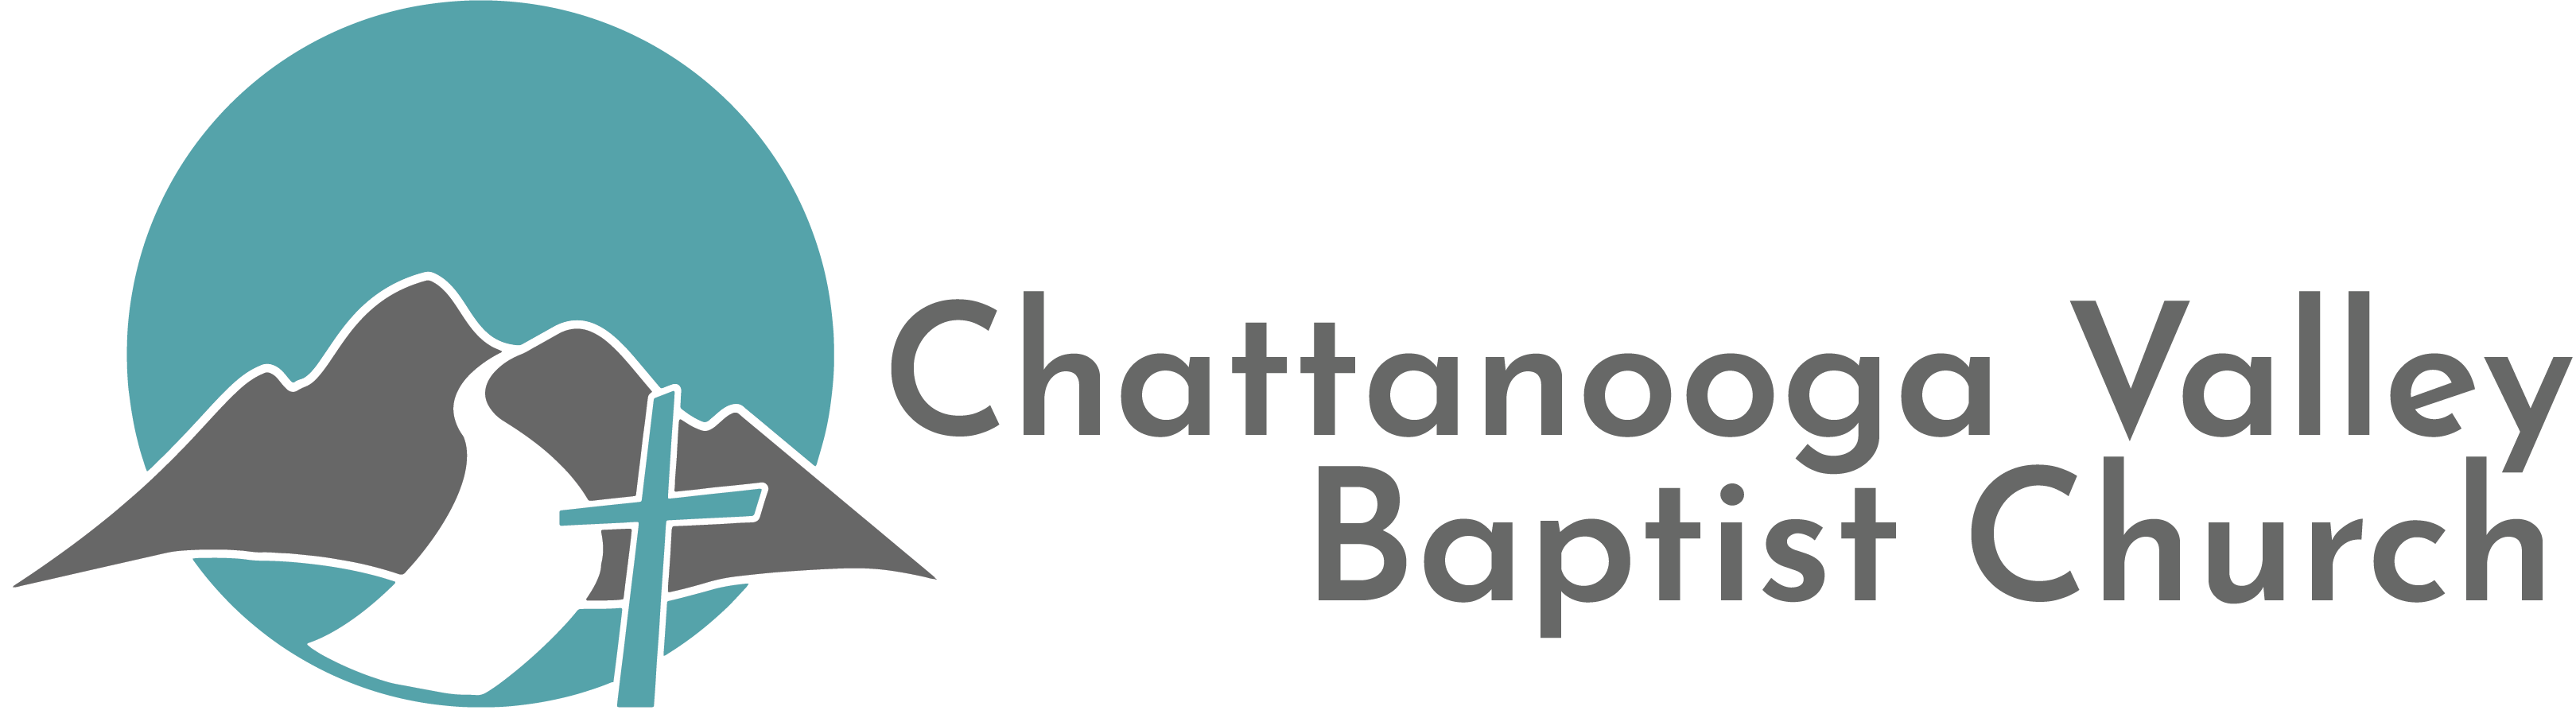 Chattanooga Valley Baptist Church